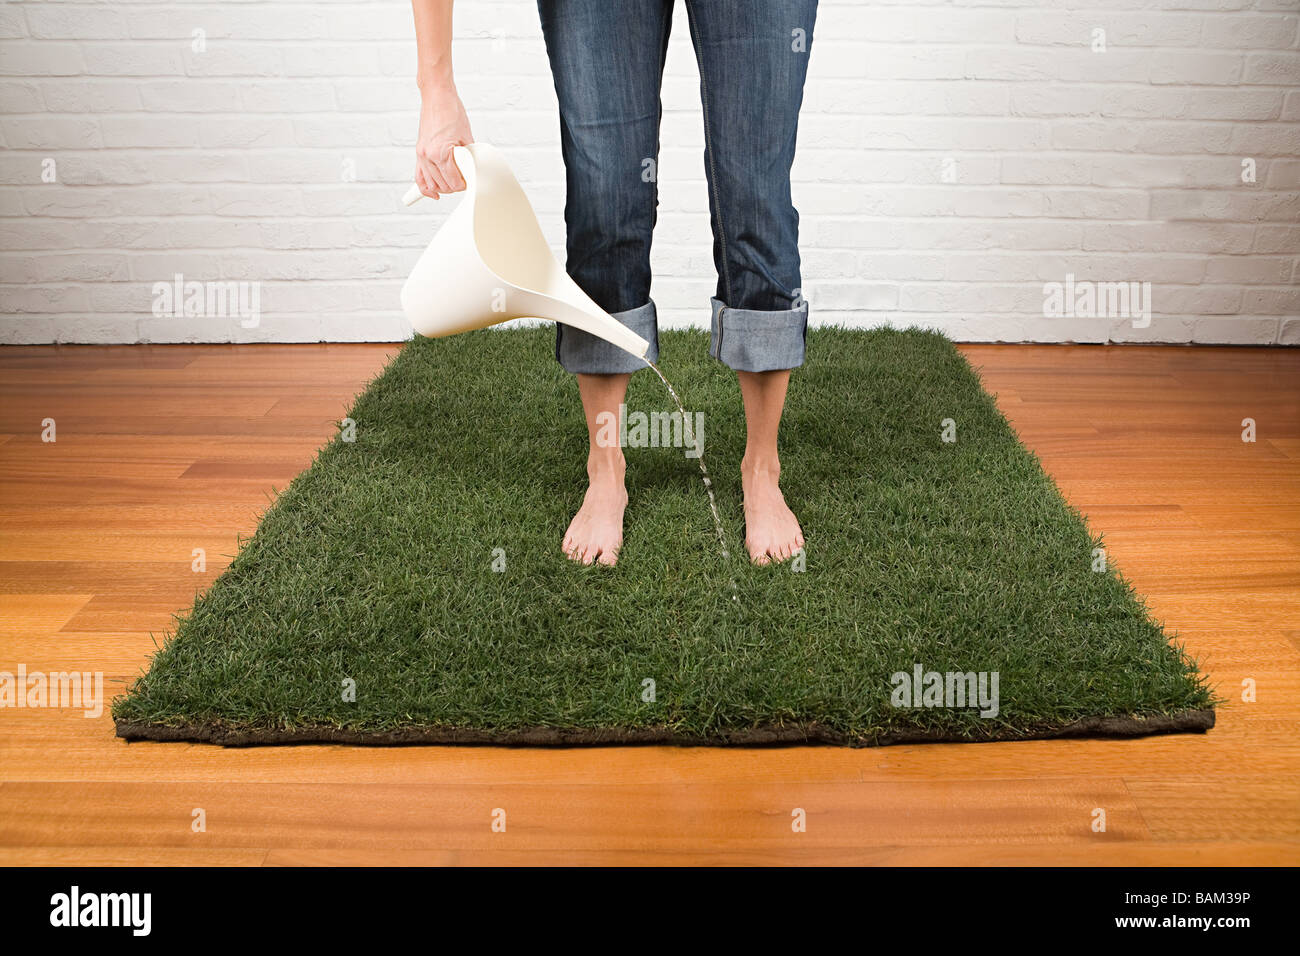 A woman watering grass - Stock Image